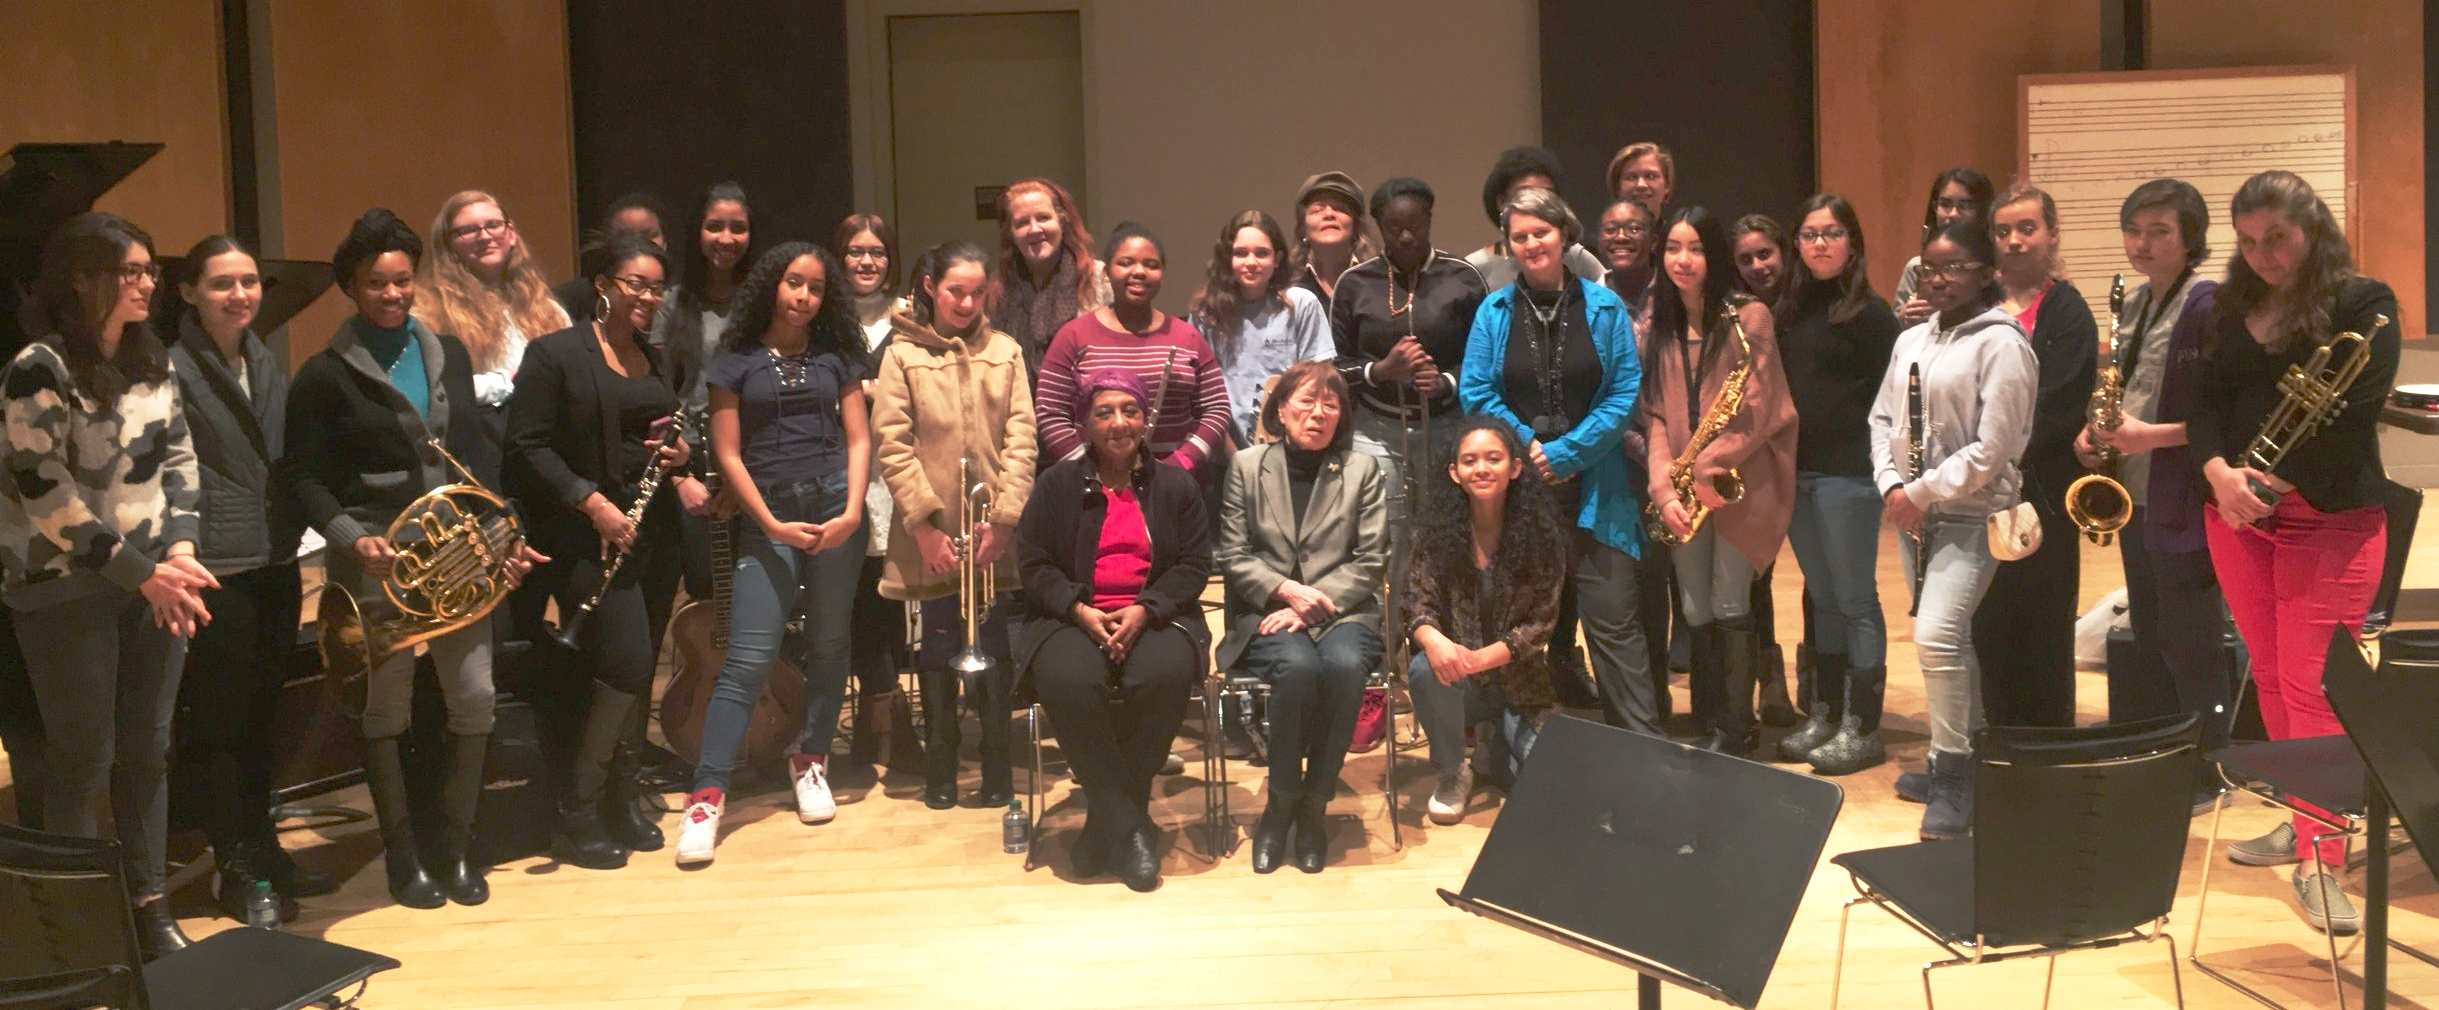 Bertha Hope, Toshiko Akiyoshi, Jessica Jones with Claire Daly, Annette Aguilar, Angeleisha Rodgers and JazzGirls from 2017